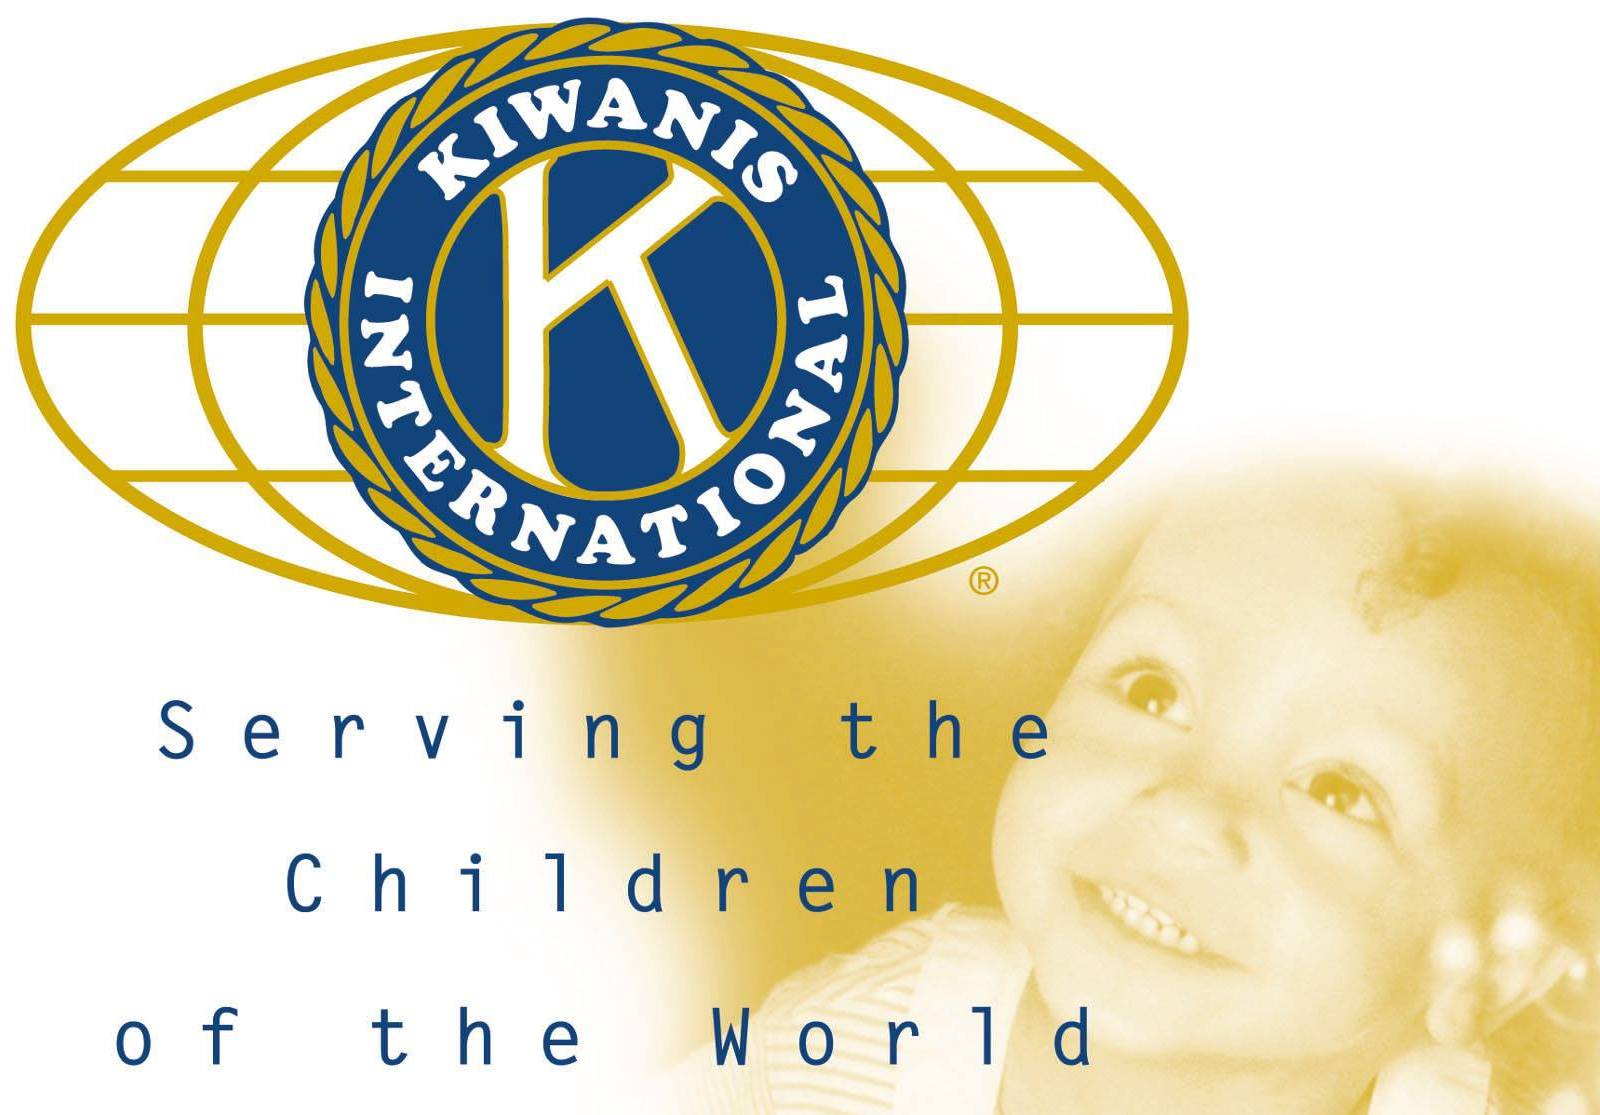 Kiwanis Club of Bentonville_1522776507908.jpg.jpg